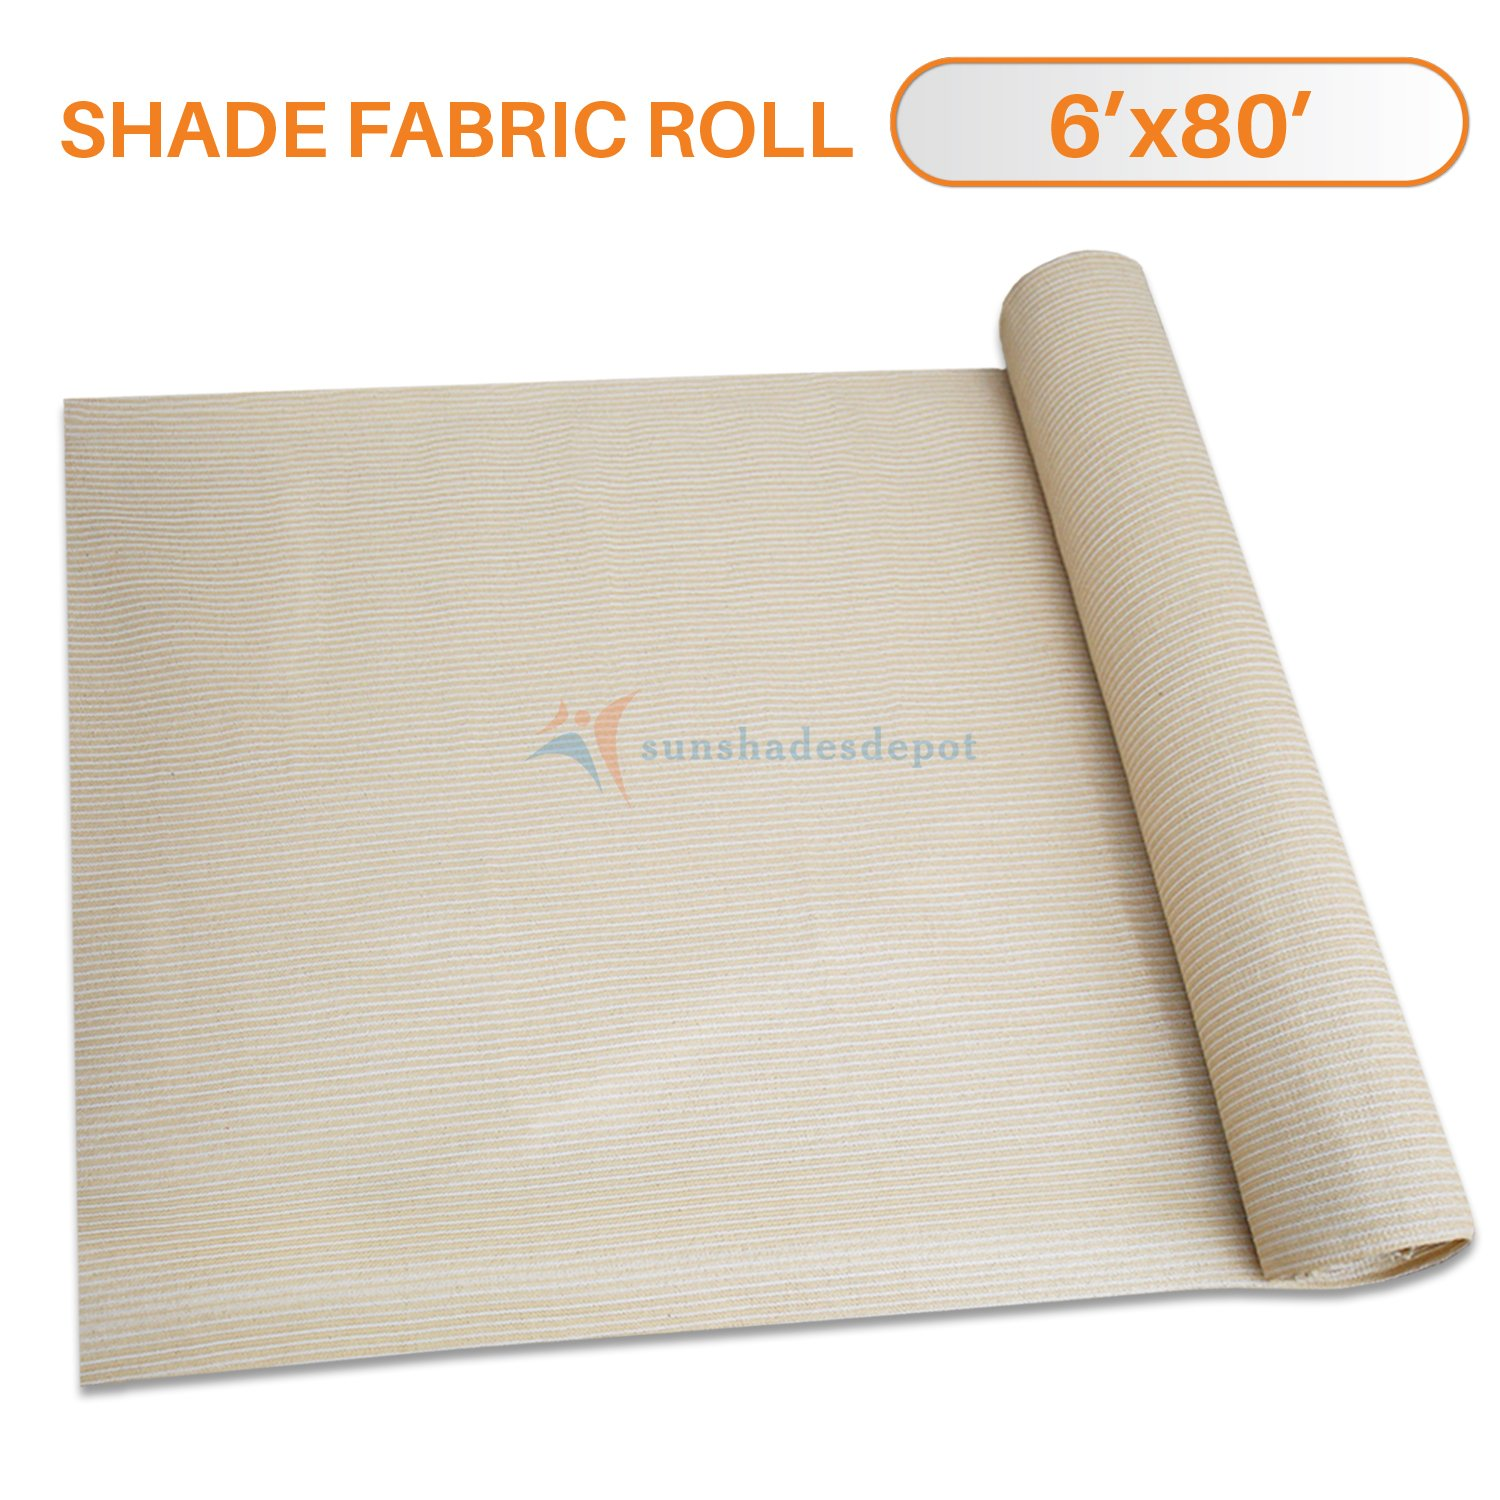 Sunshades Depot 6' x 80' Shade Cloth 180 GSM HDPE Beige Fabric Roll Up to 95% Blockage UV Resistant Mesh Net